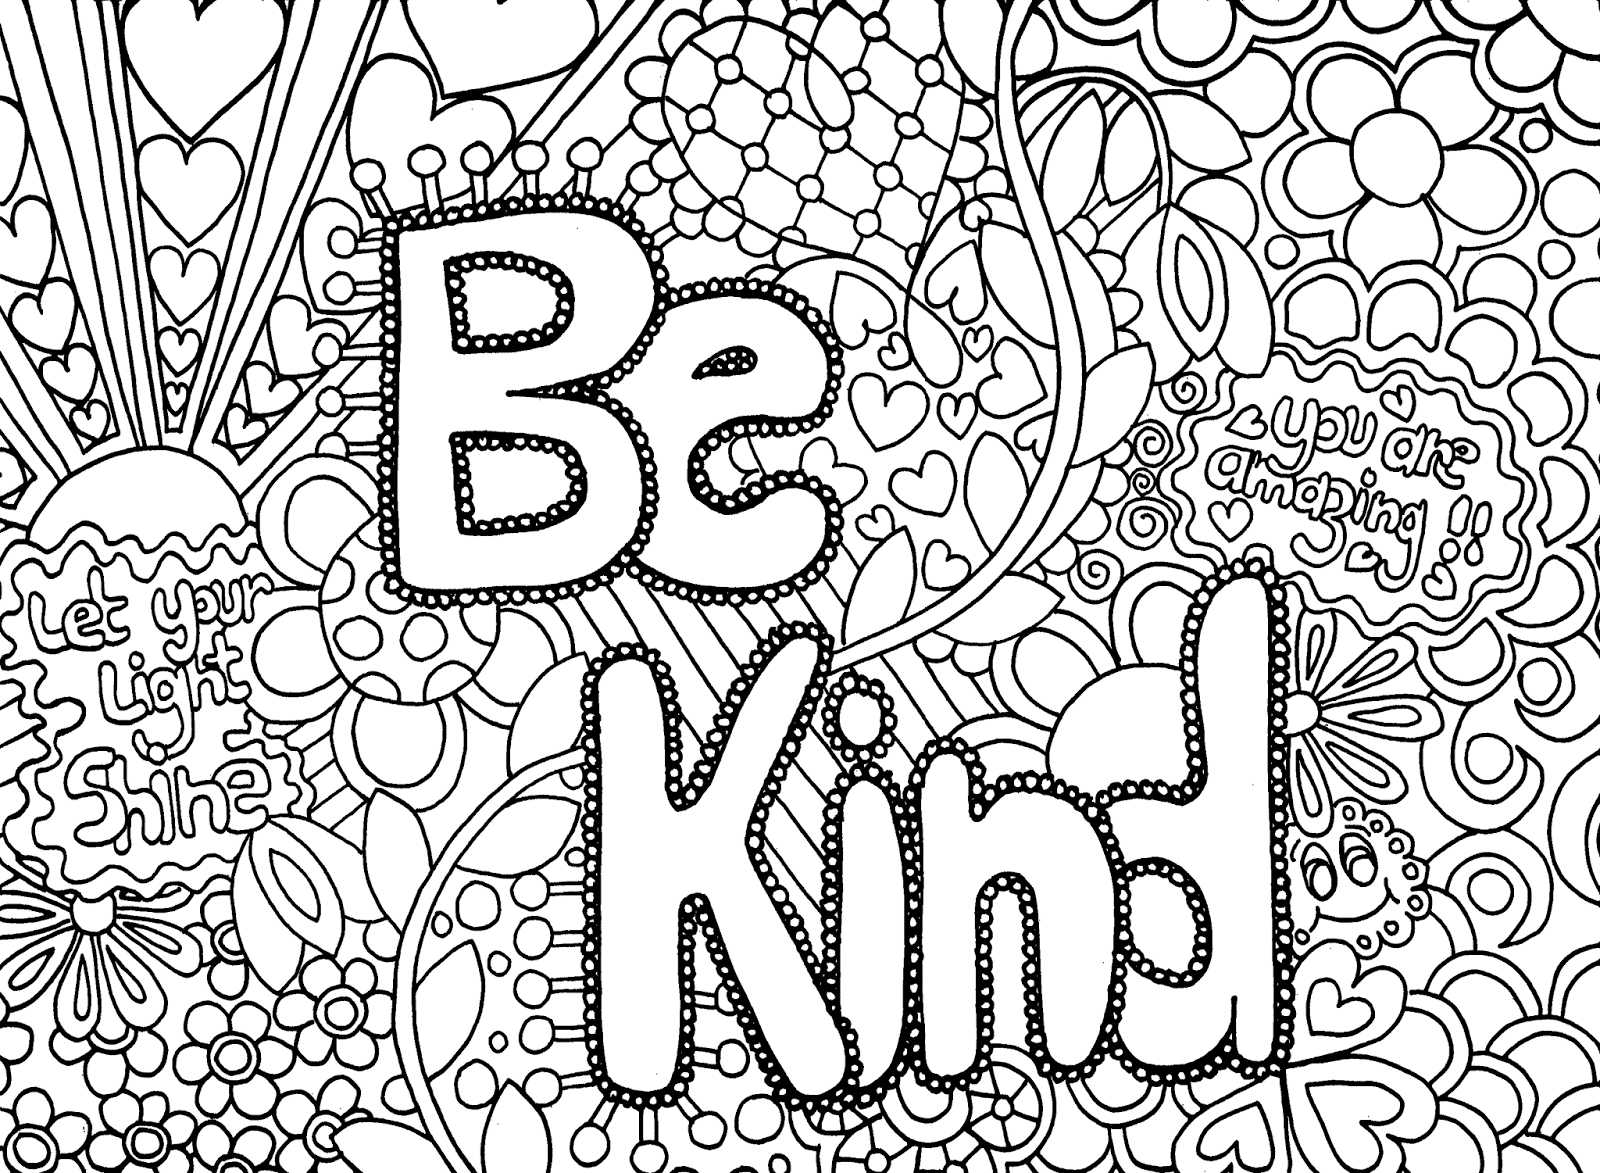 difficult hard coloring pages printable printable coloring pages sheets for kids get the latest free difficult hard coloring pages printable images - Teenage Coloring Pages Printable